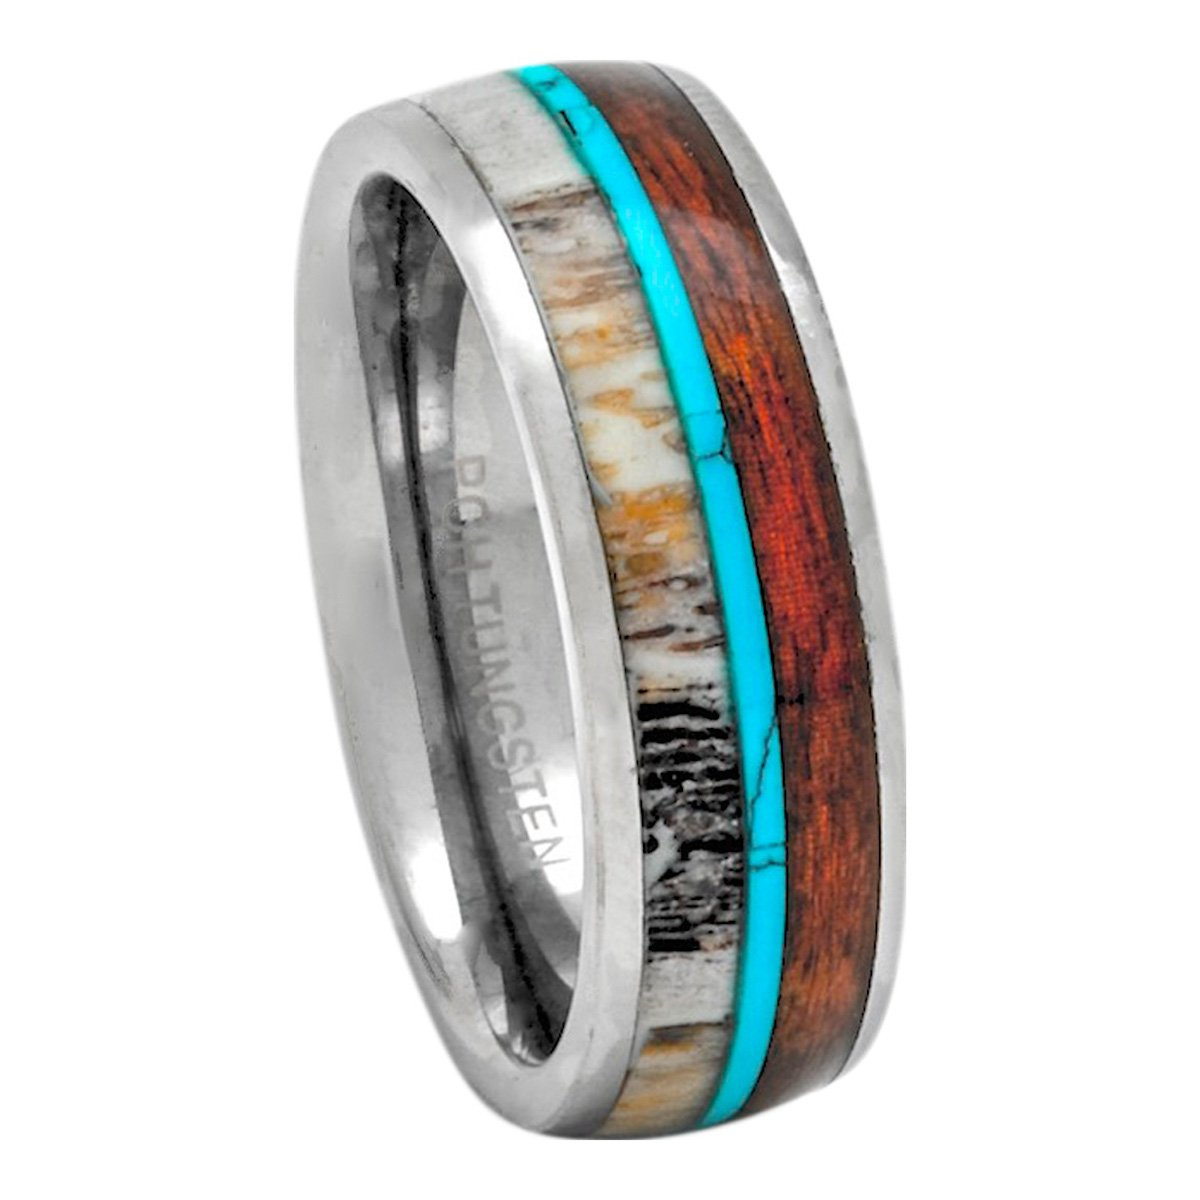 Amazon Pch Jewelers Deer Antler Ring Tungsten With Turquoise And Koa Wood 8mm Band Jewelry: Antler Wedding Ring Turquoise At Websimilar.org